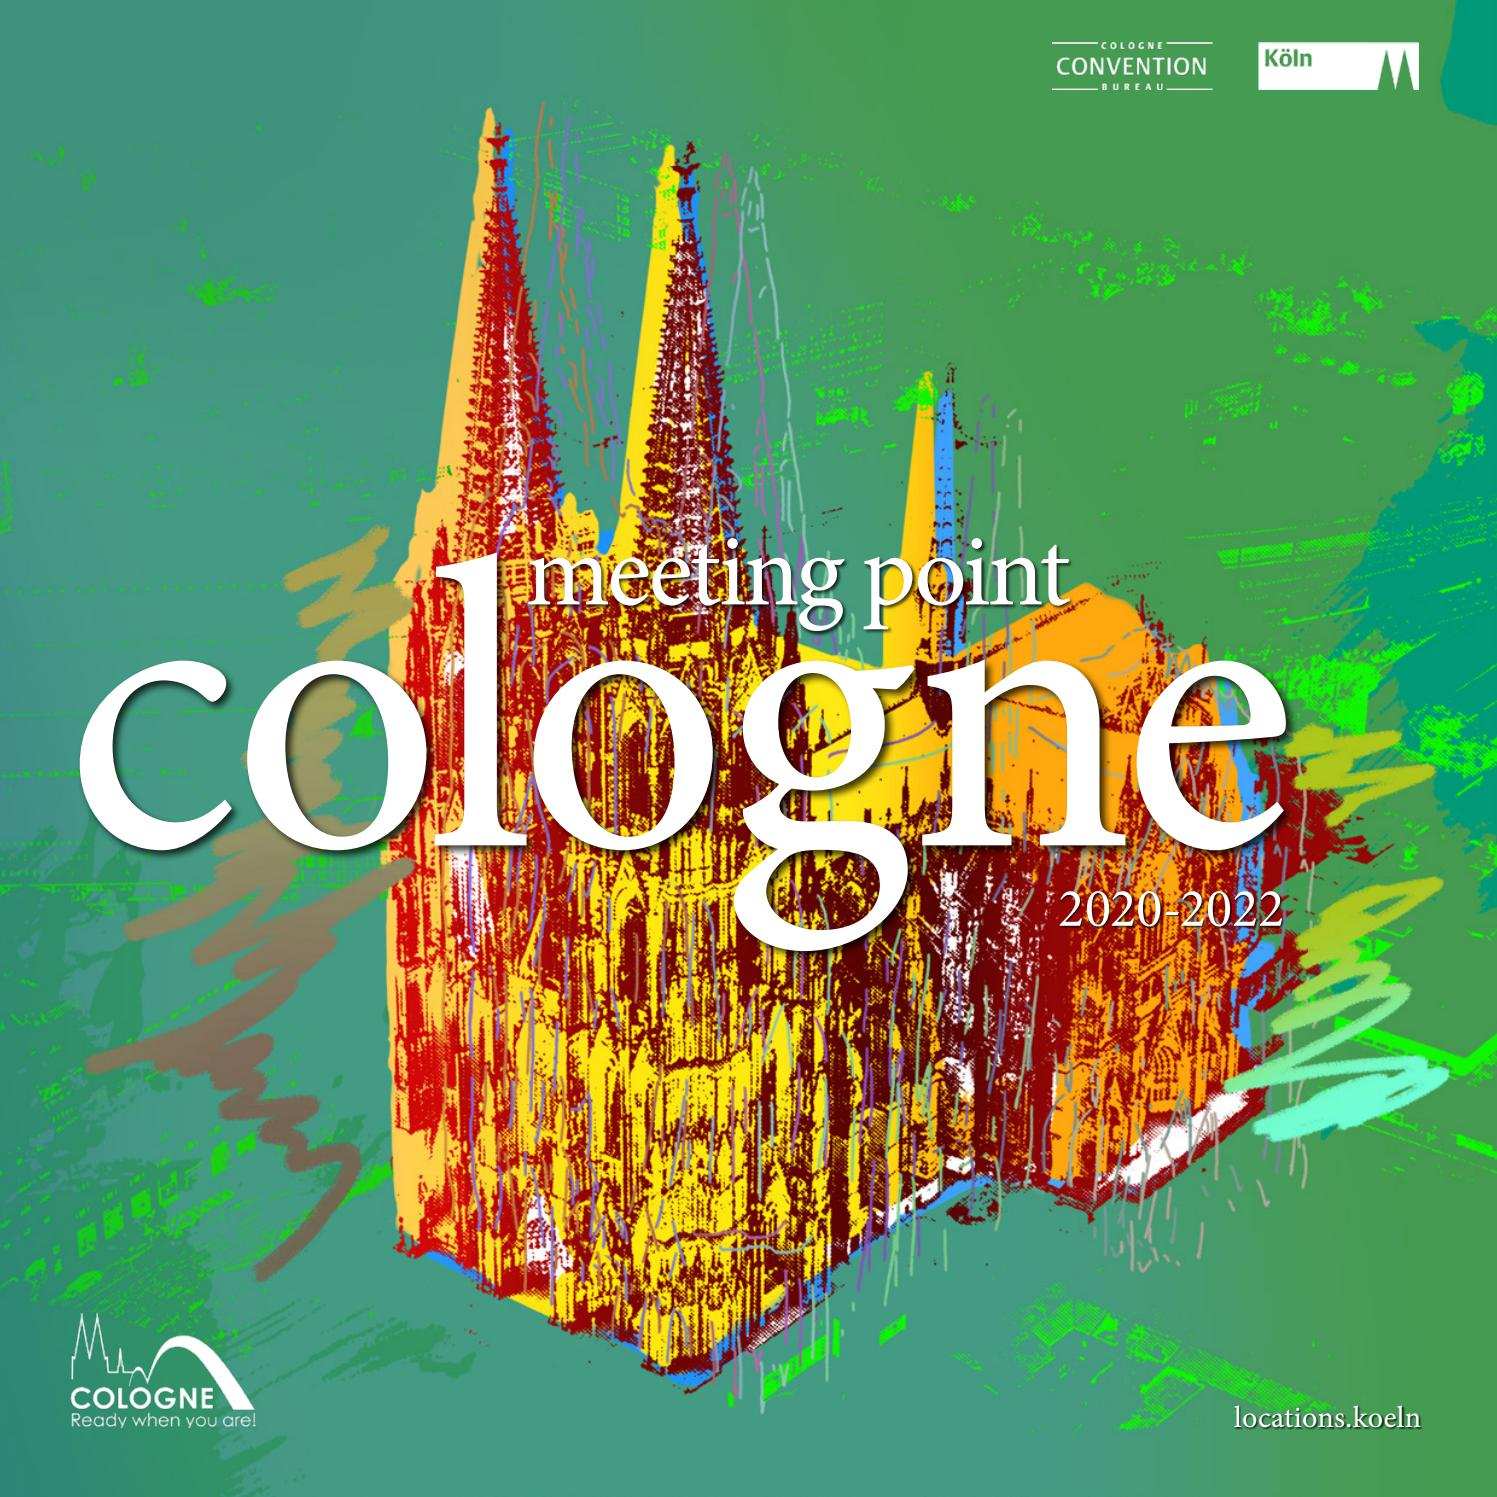 Meeting Point Cologne 20/20 by KölnTourismusGmbH   issuu